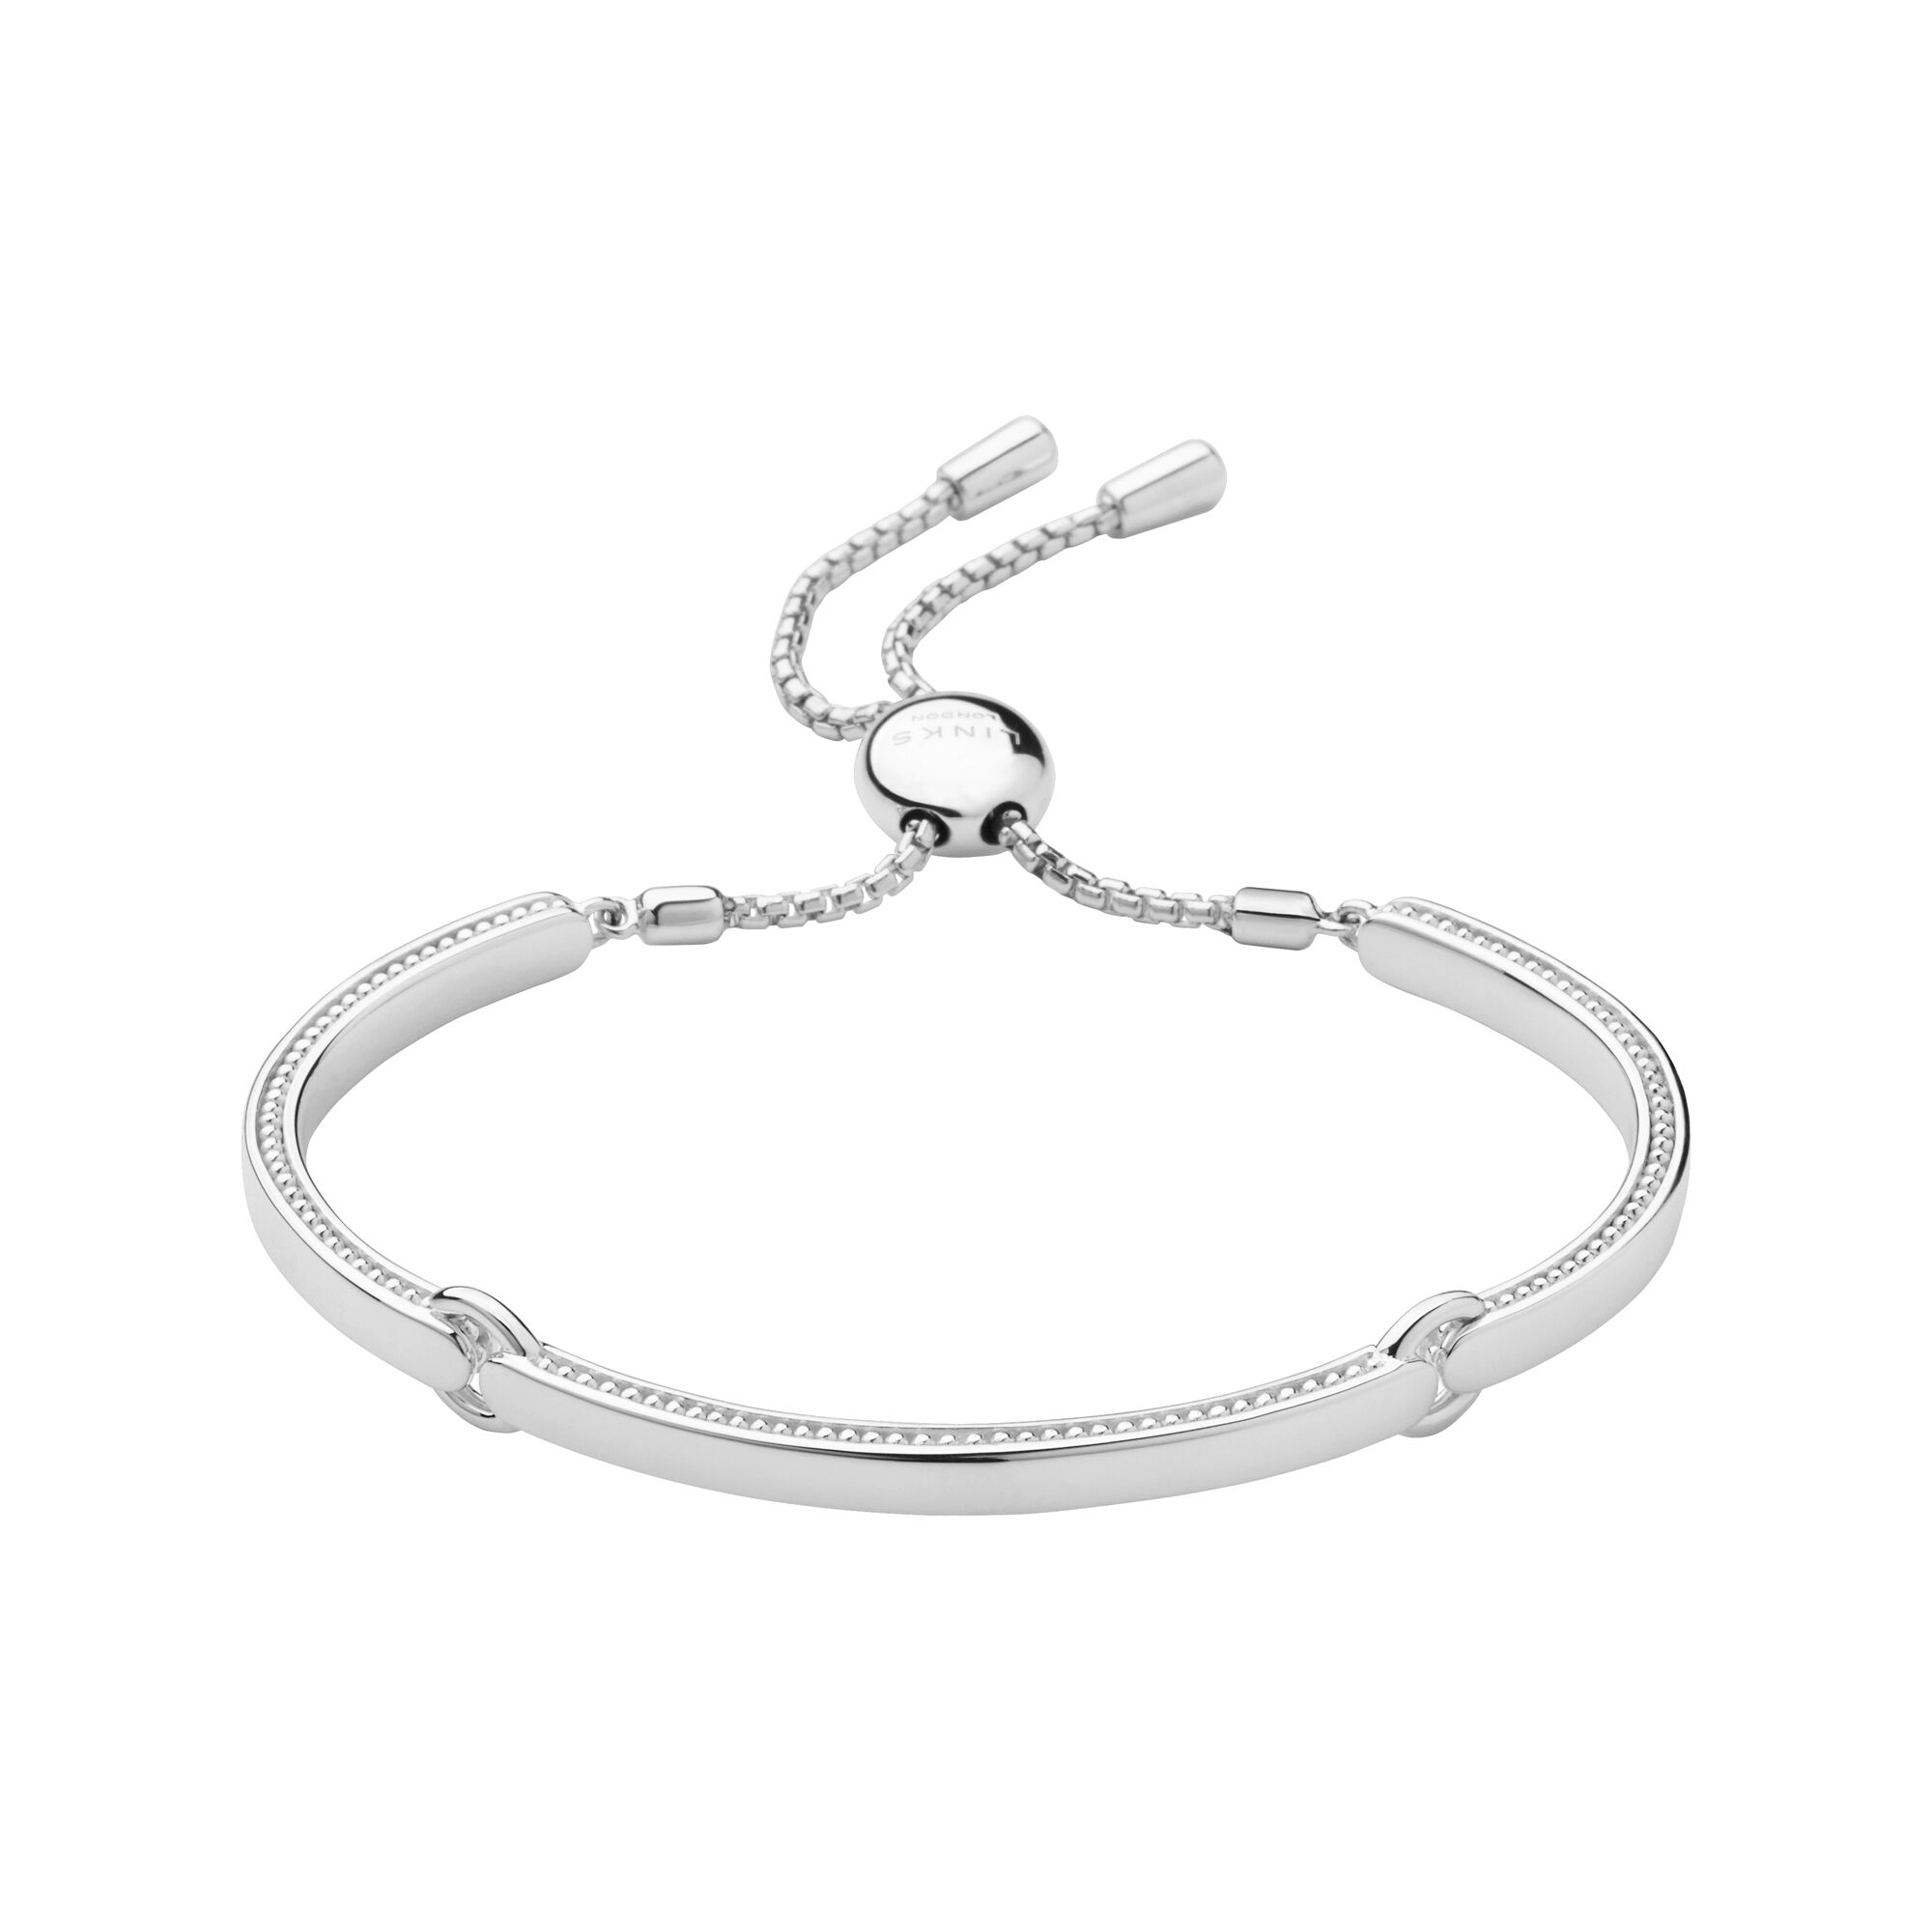 pcr best and the bracelets bangles cuff between reviews s mother helpful in love no bangle adjustable women daughter distance a knows messaged rated bracelet customer inspirational